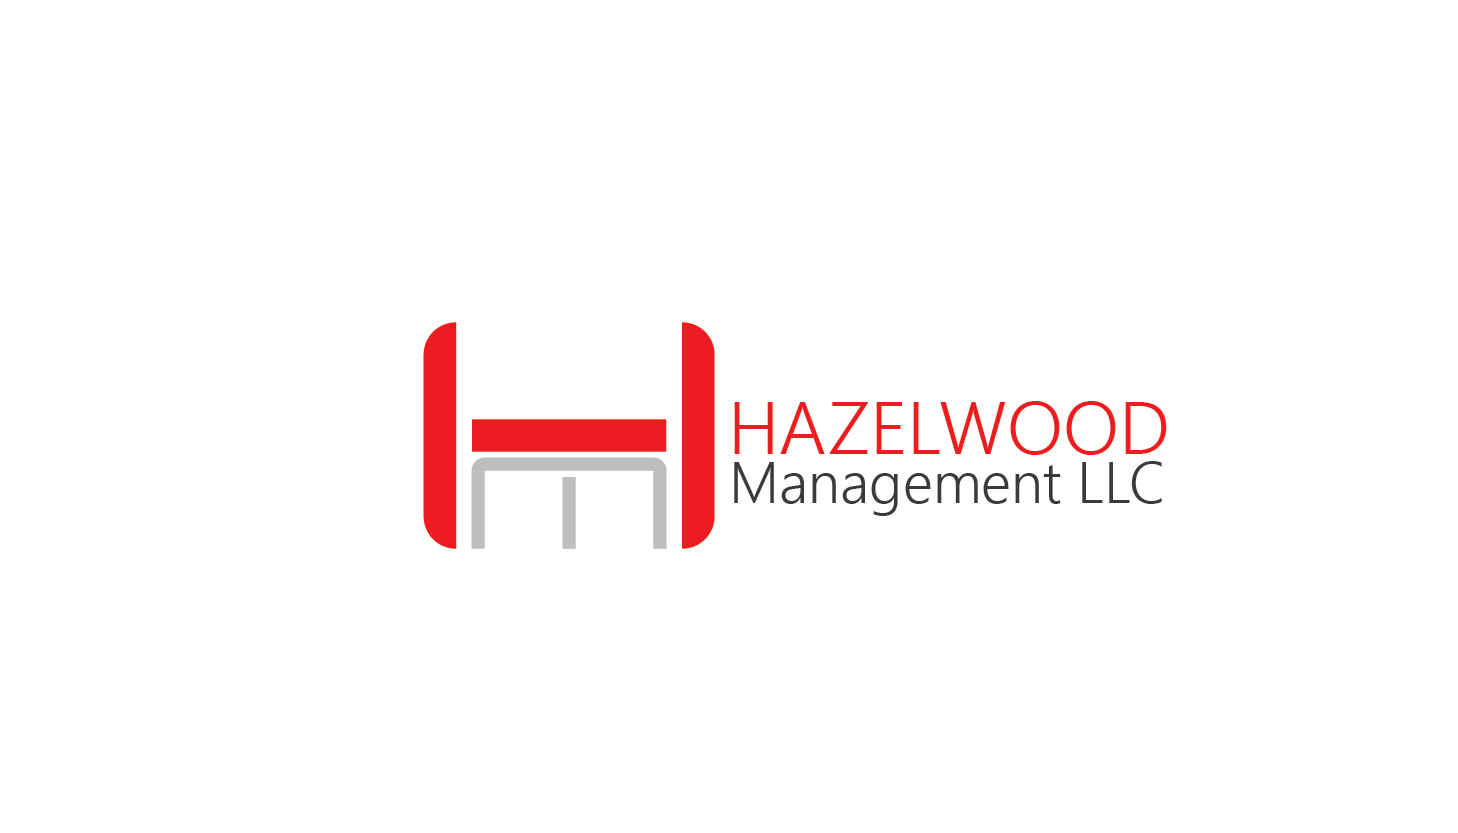 Logo Design by Private User - Entry No. 141 in the Logo Design Contest Hazelwood Management LLC Logo Design.